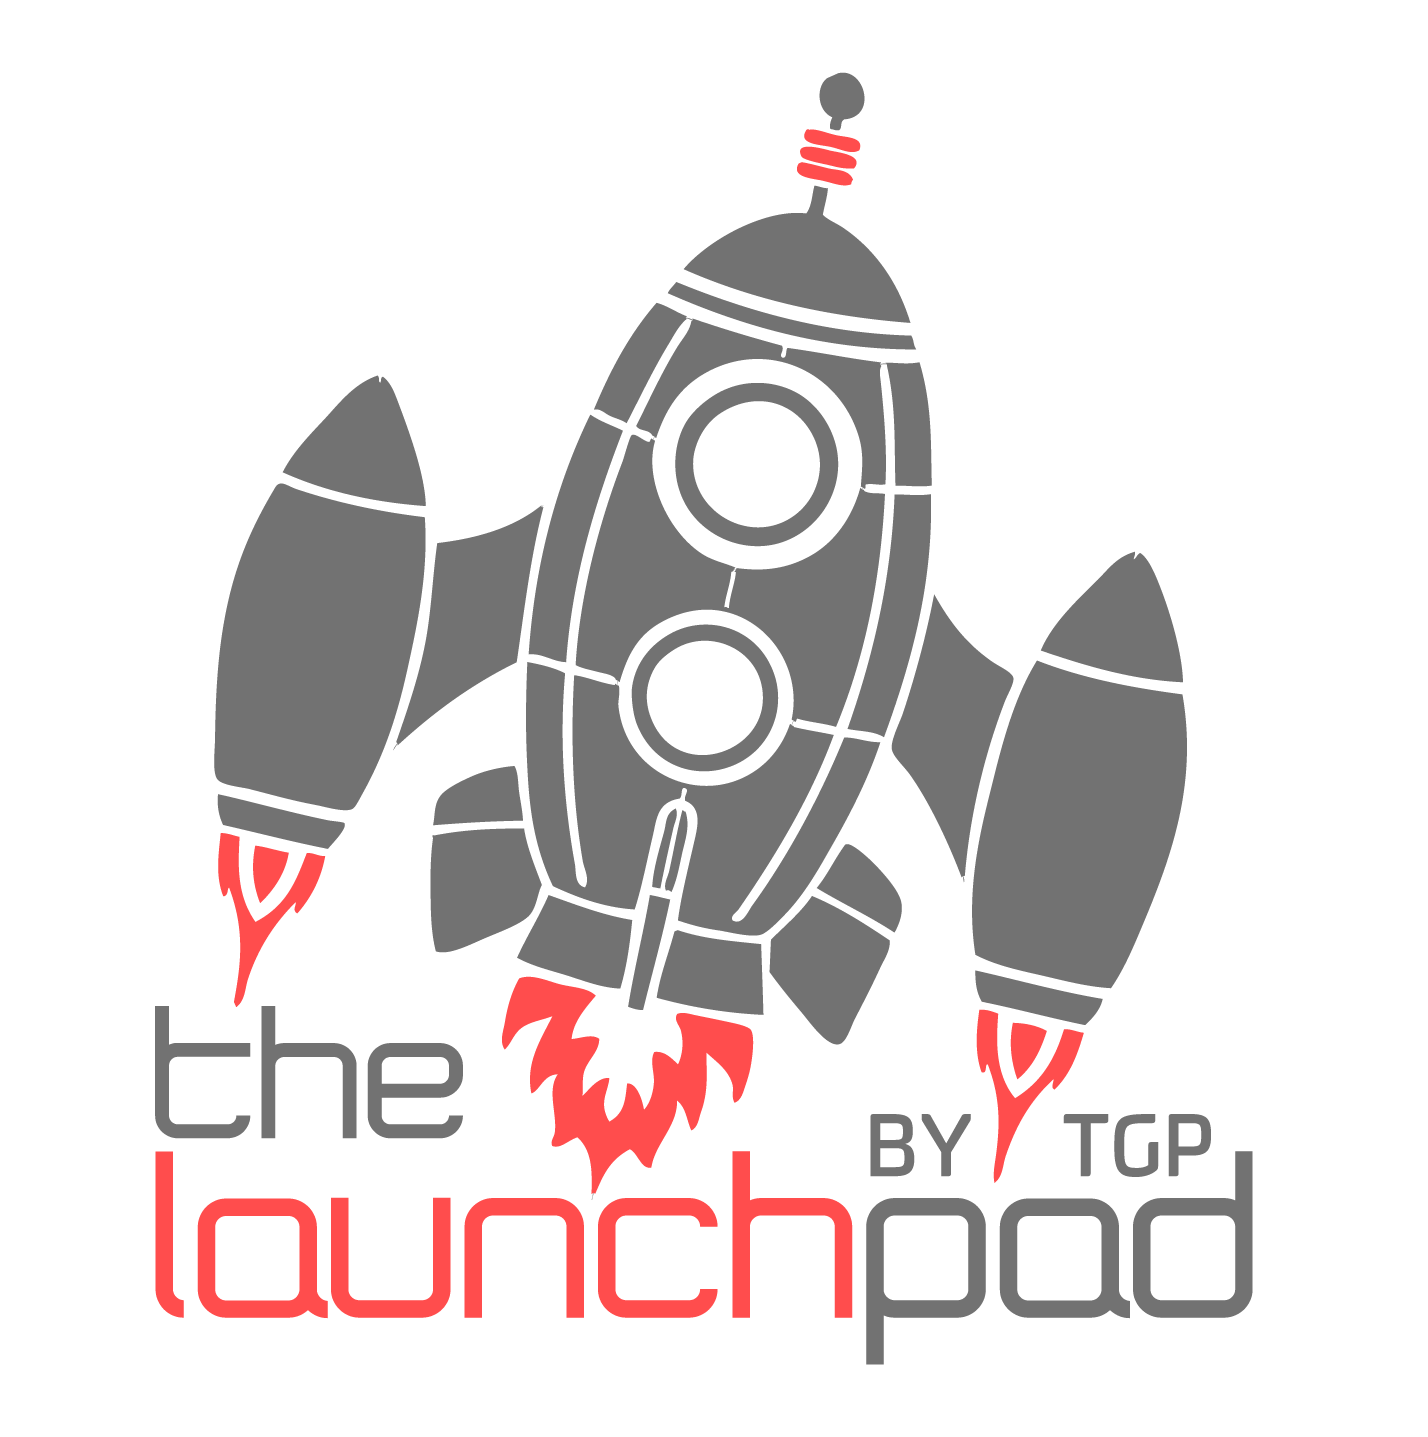 Clipart rocket launching pad. The launch